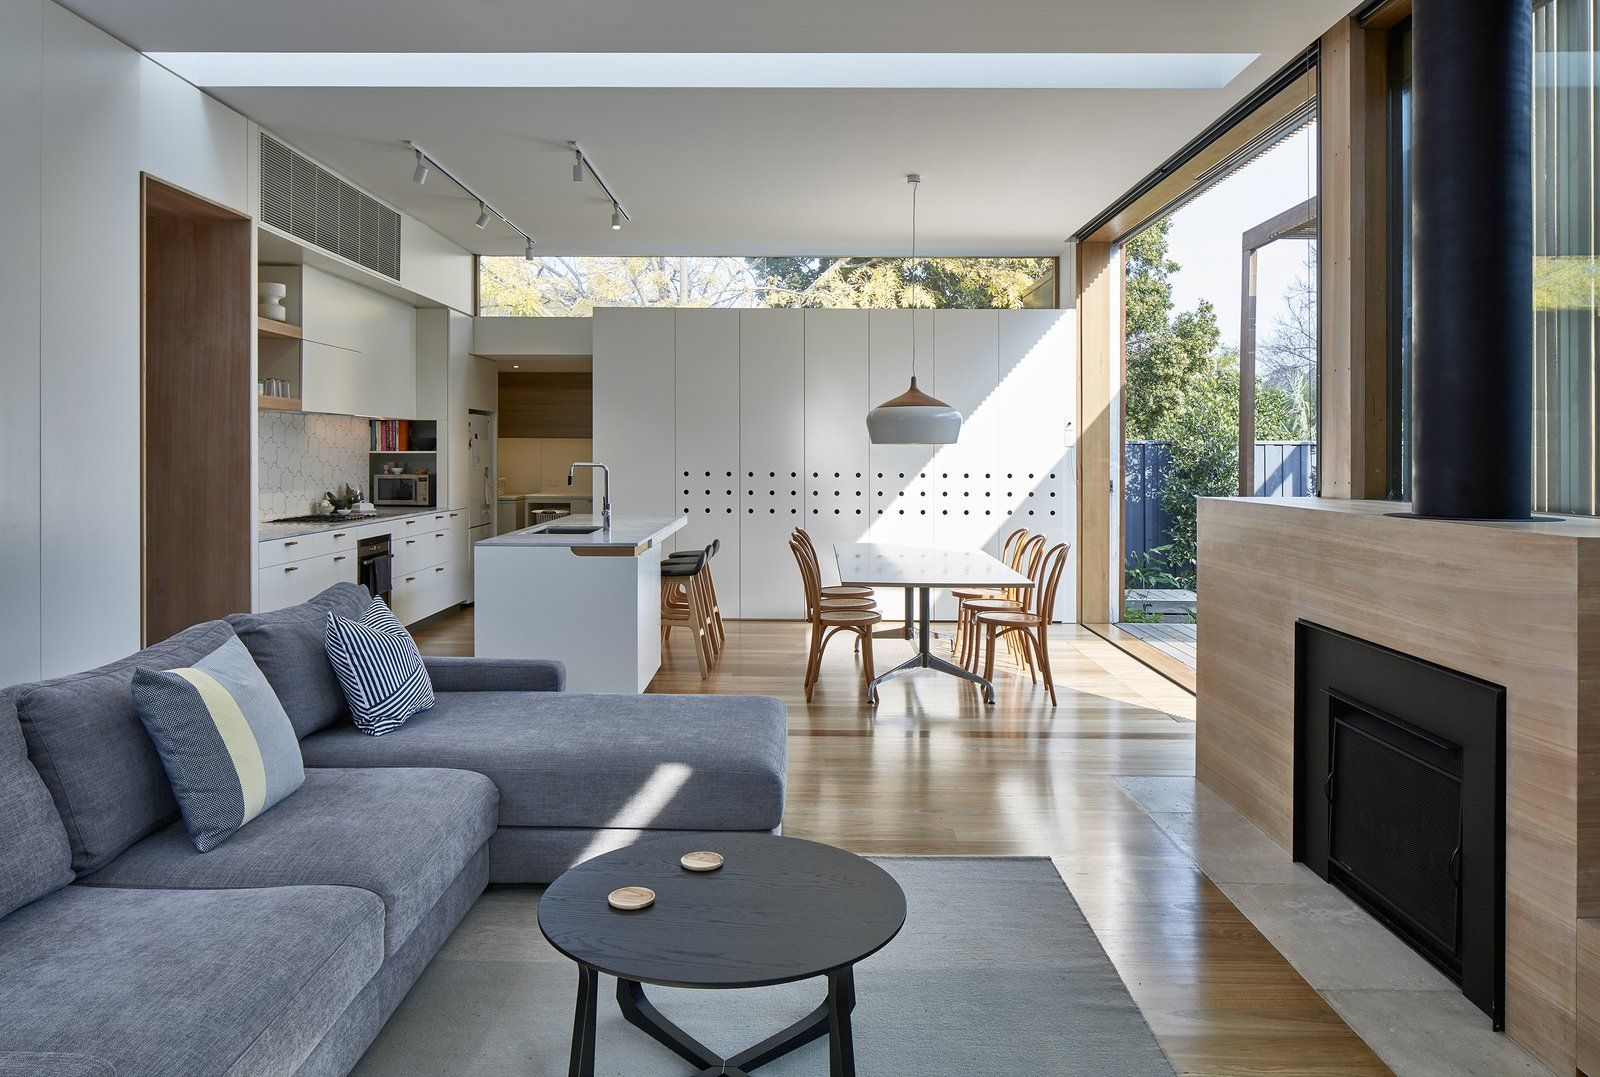 Wooden Screens Shade This Sustainable Melbourne Residence Home